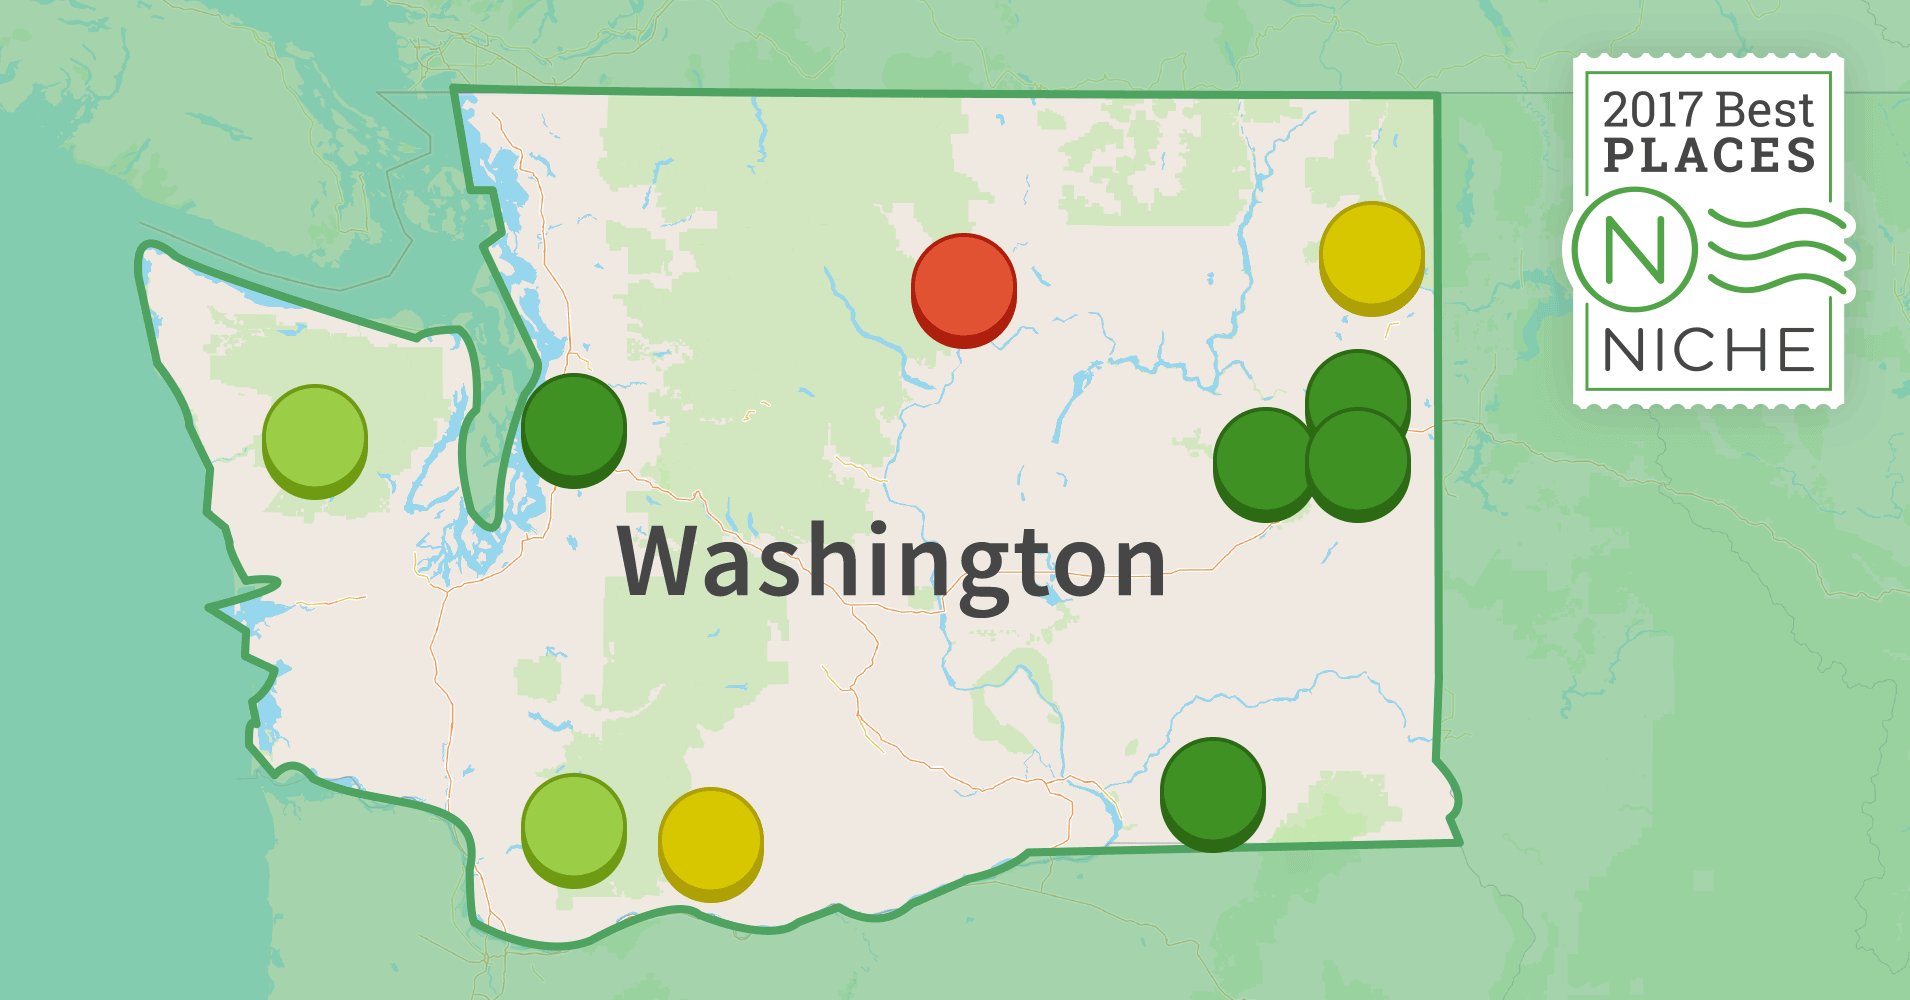 2017 Best Places to Live in Washington Niche